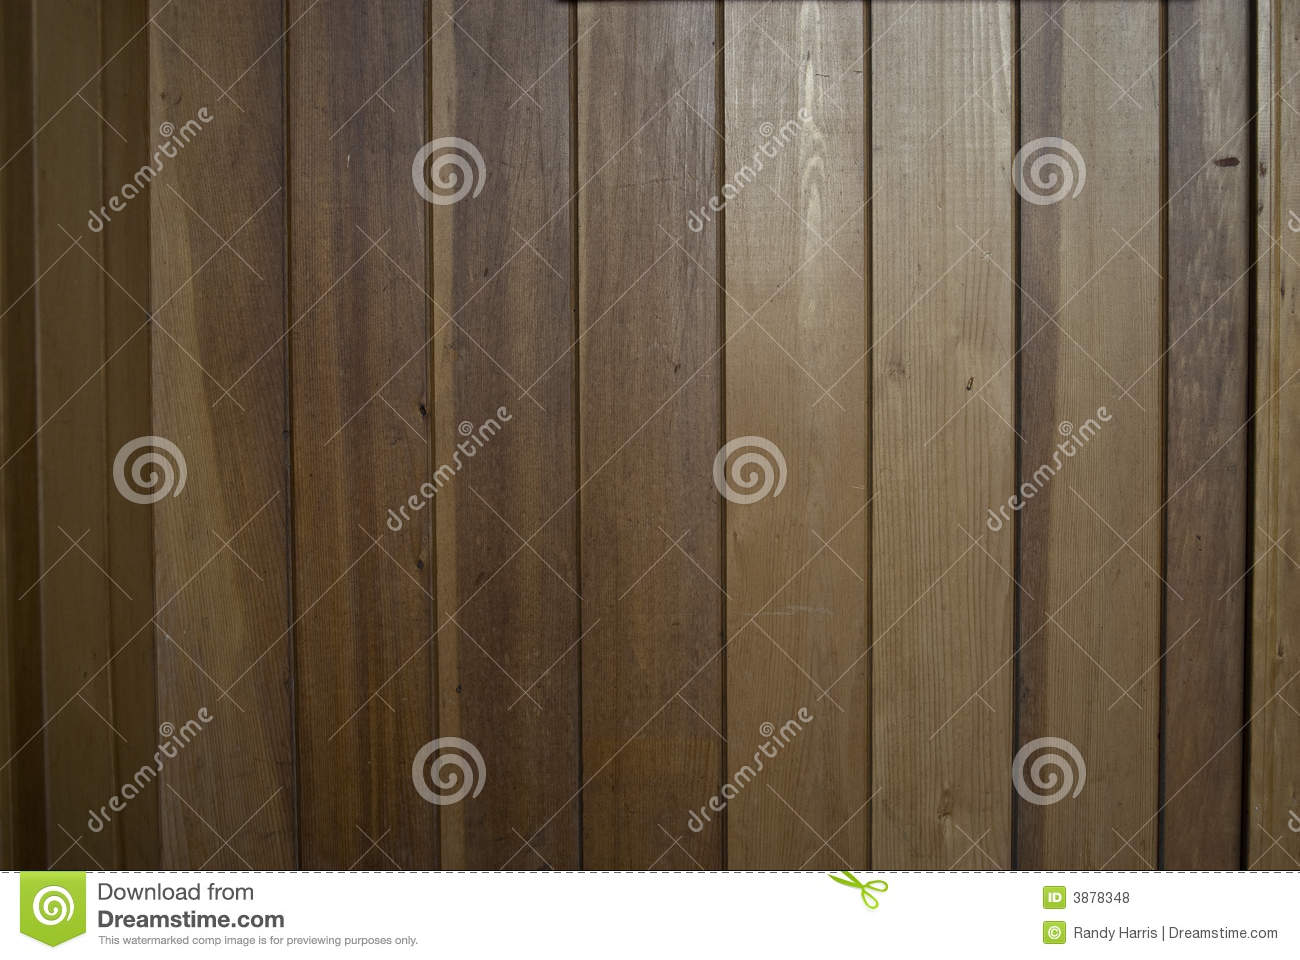 wood paneled walls royalty free stock photos image 3878348